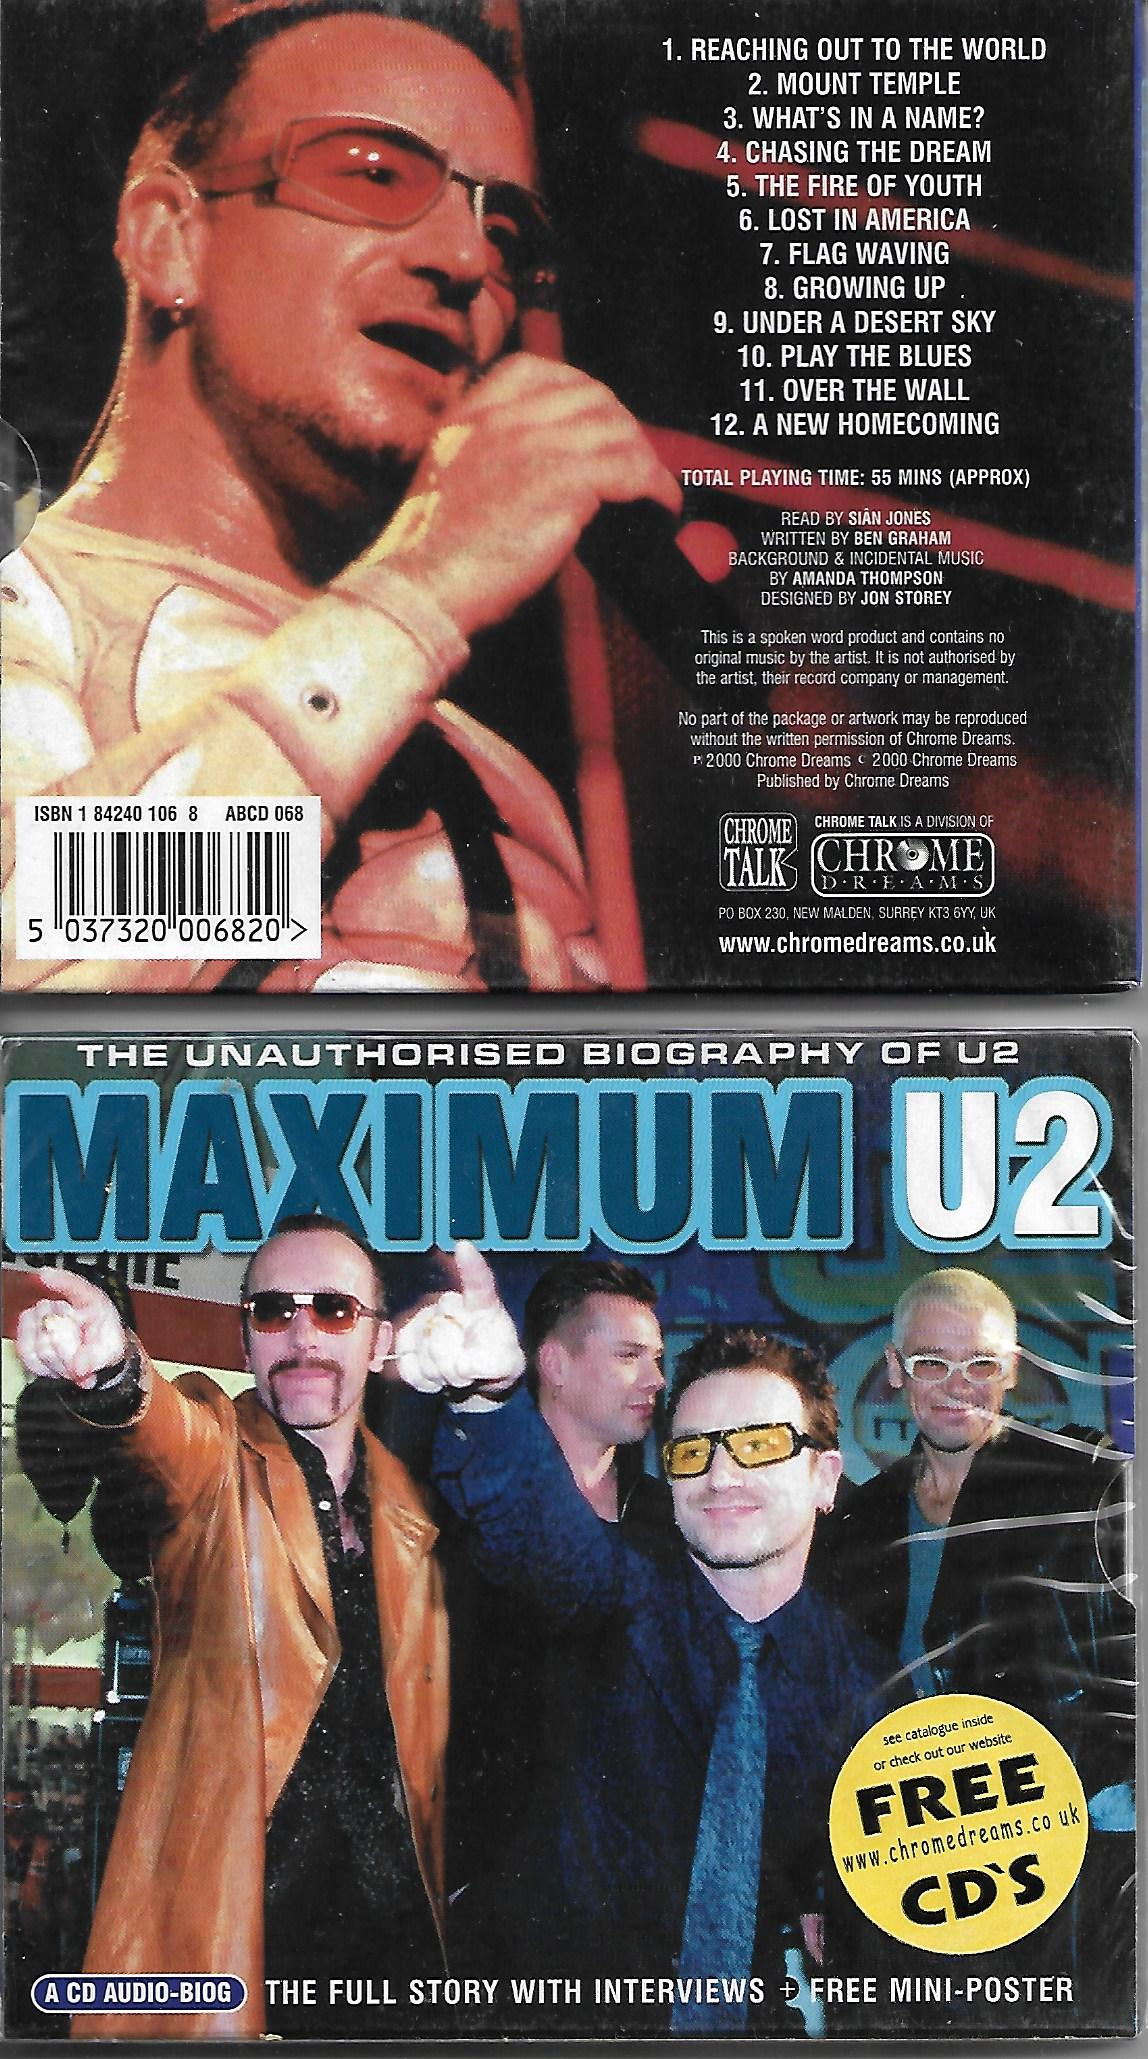 U2 - Maximum U2 - Livre + Cd Interview -